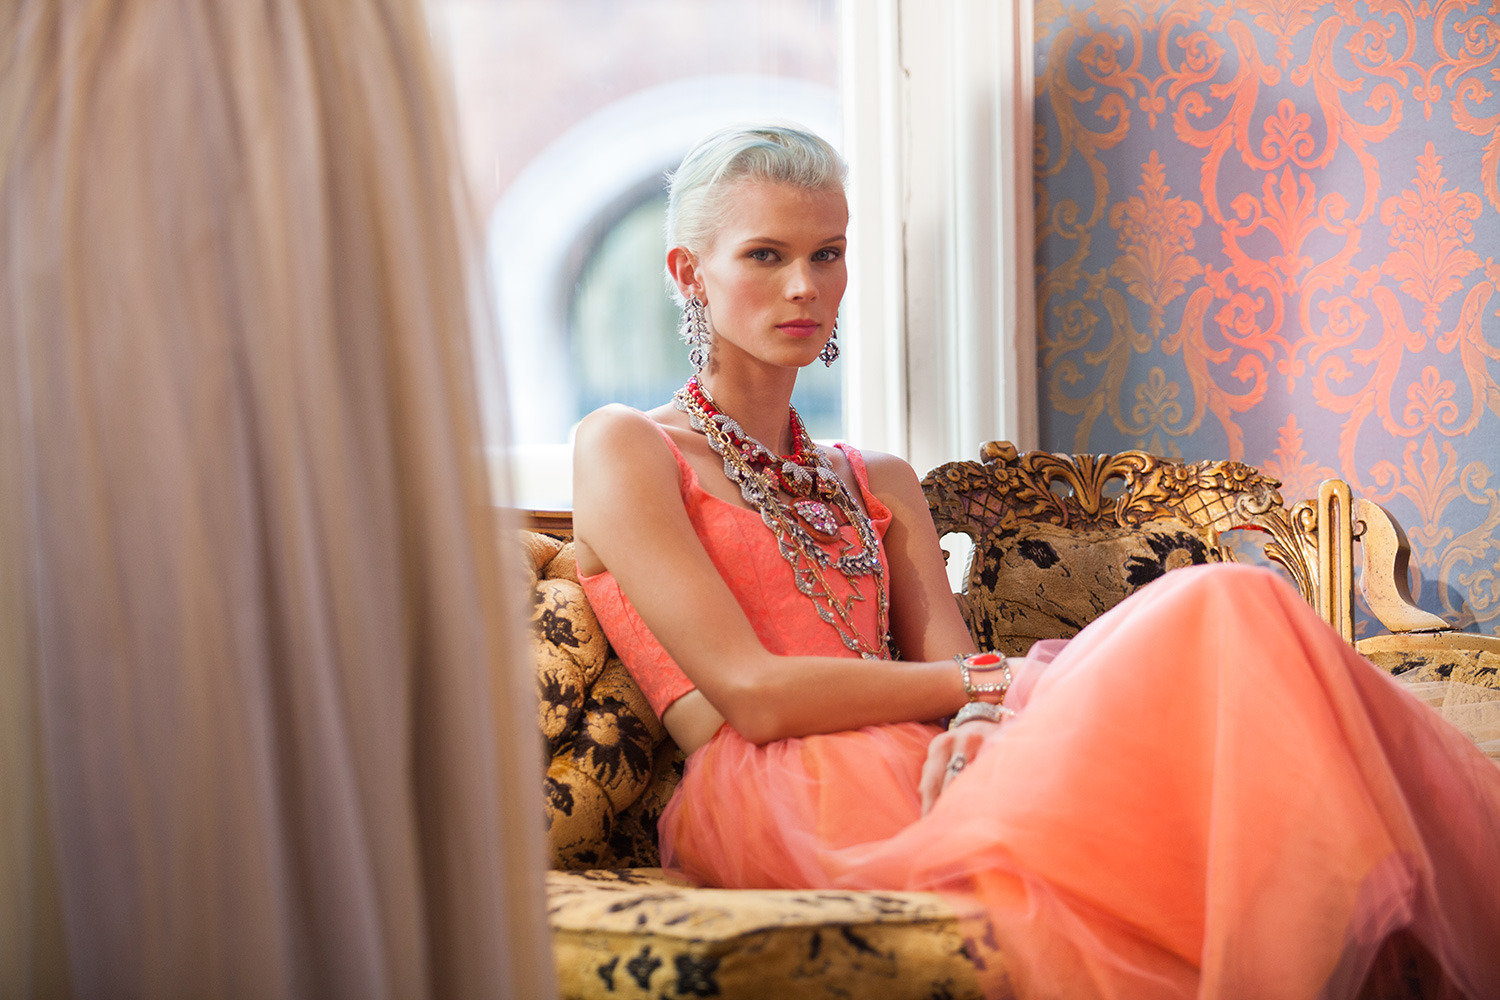 Lulu frost goes neon baroque for spring 2014 aol lifestyle for Baroque lifestyle